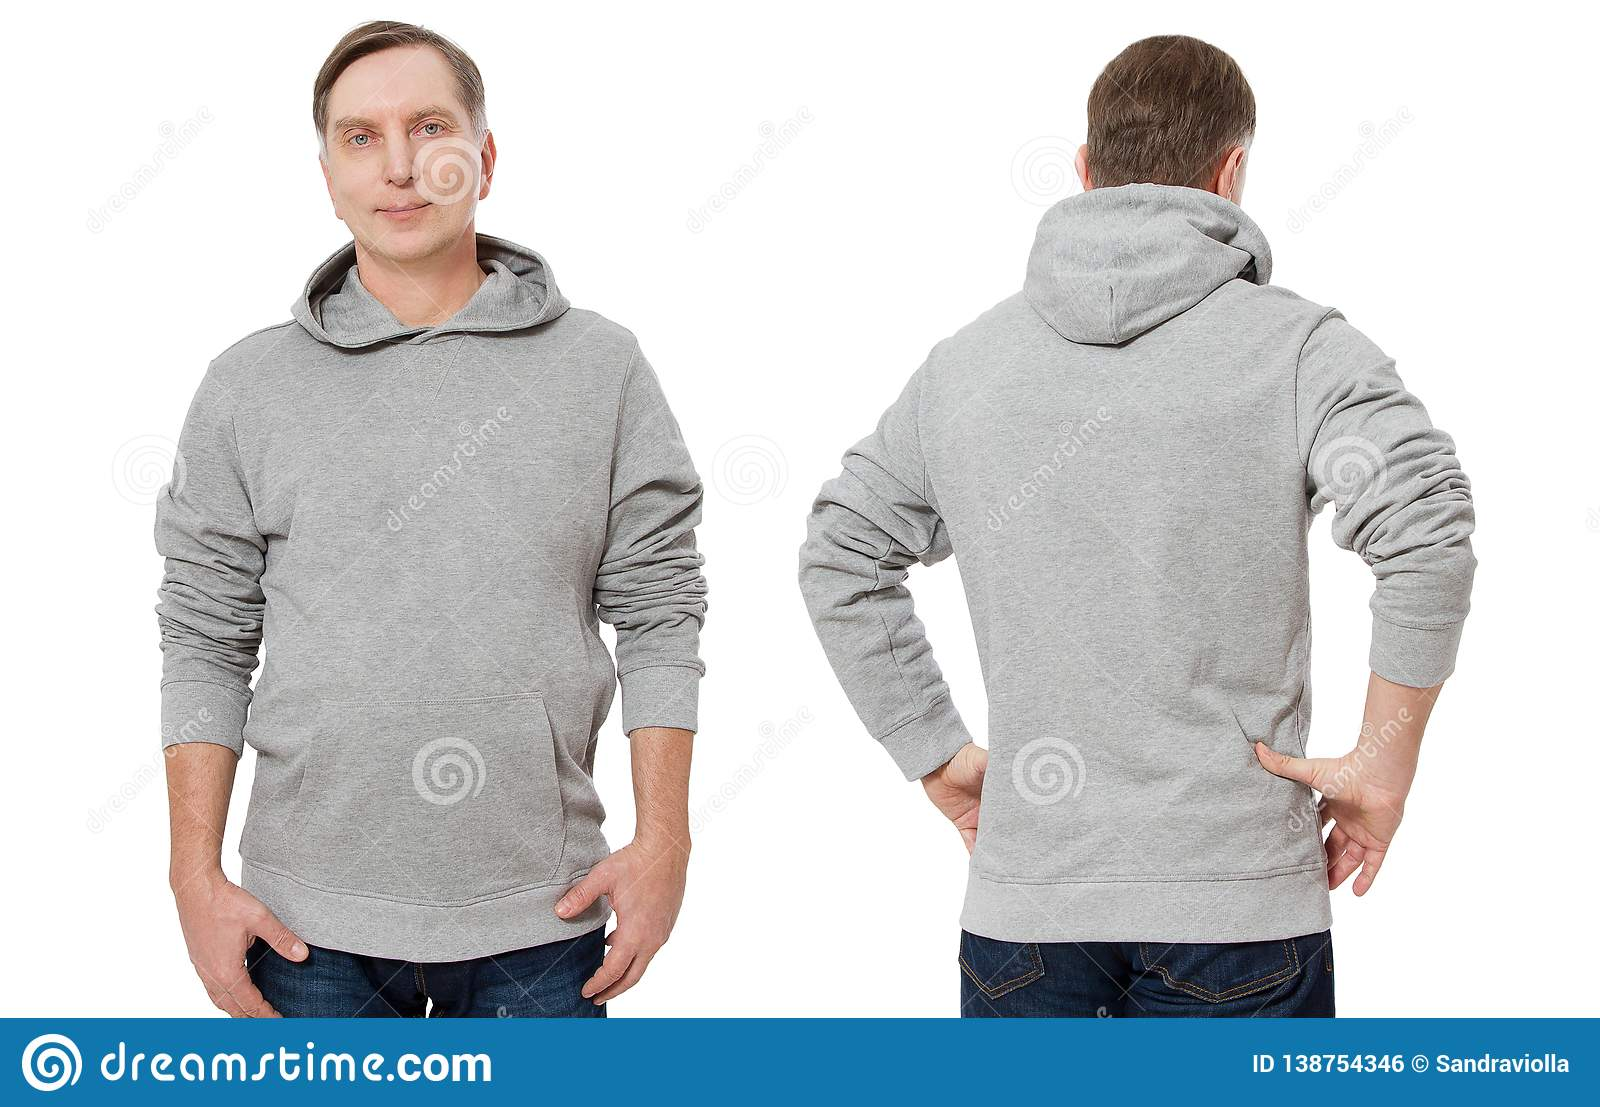 Middle age man in gray sweatshirt template isolated. Male sweatshirts set with mockup, copy space. Sweat shirt design front back